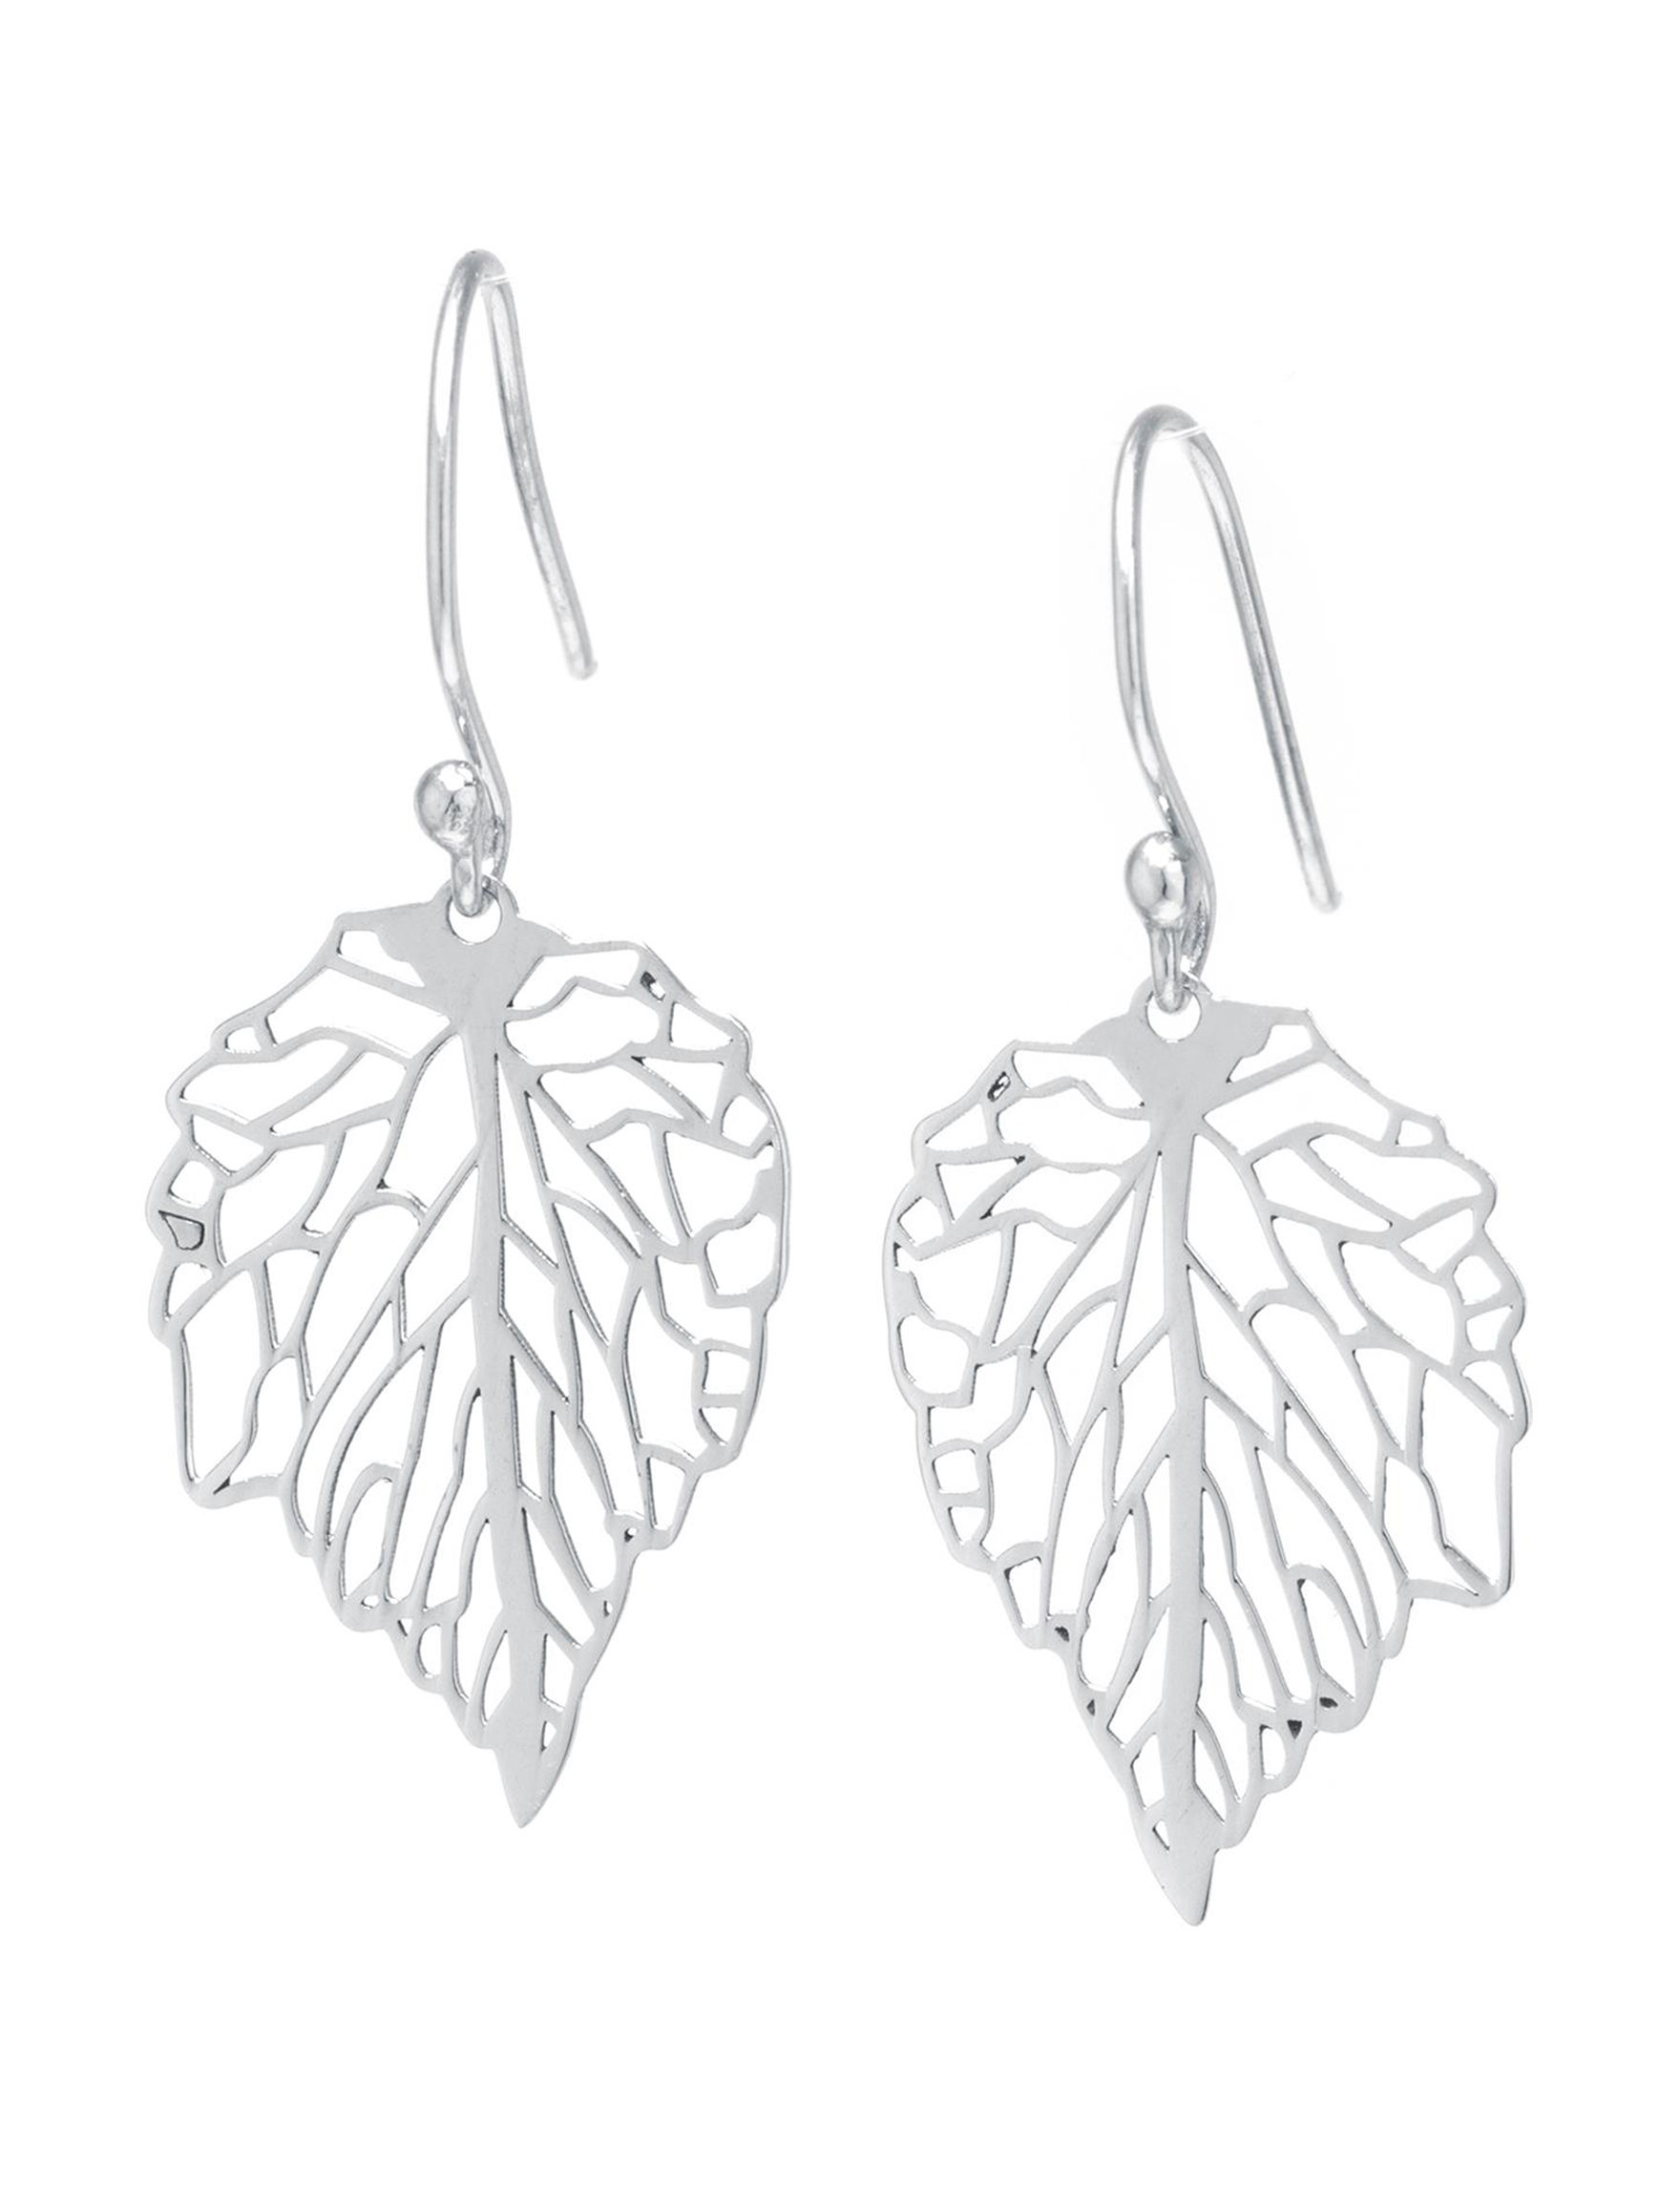 Athra Silver Drops Earrings Fine Jewelry